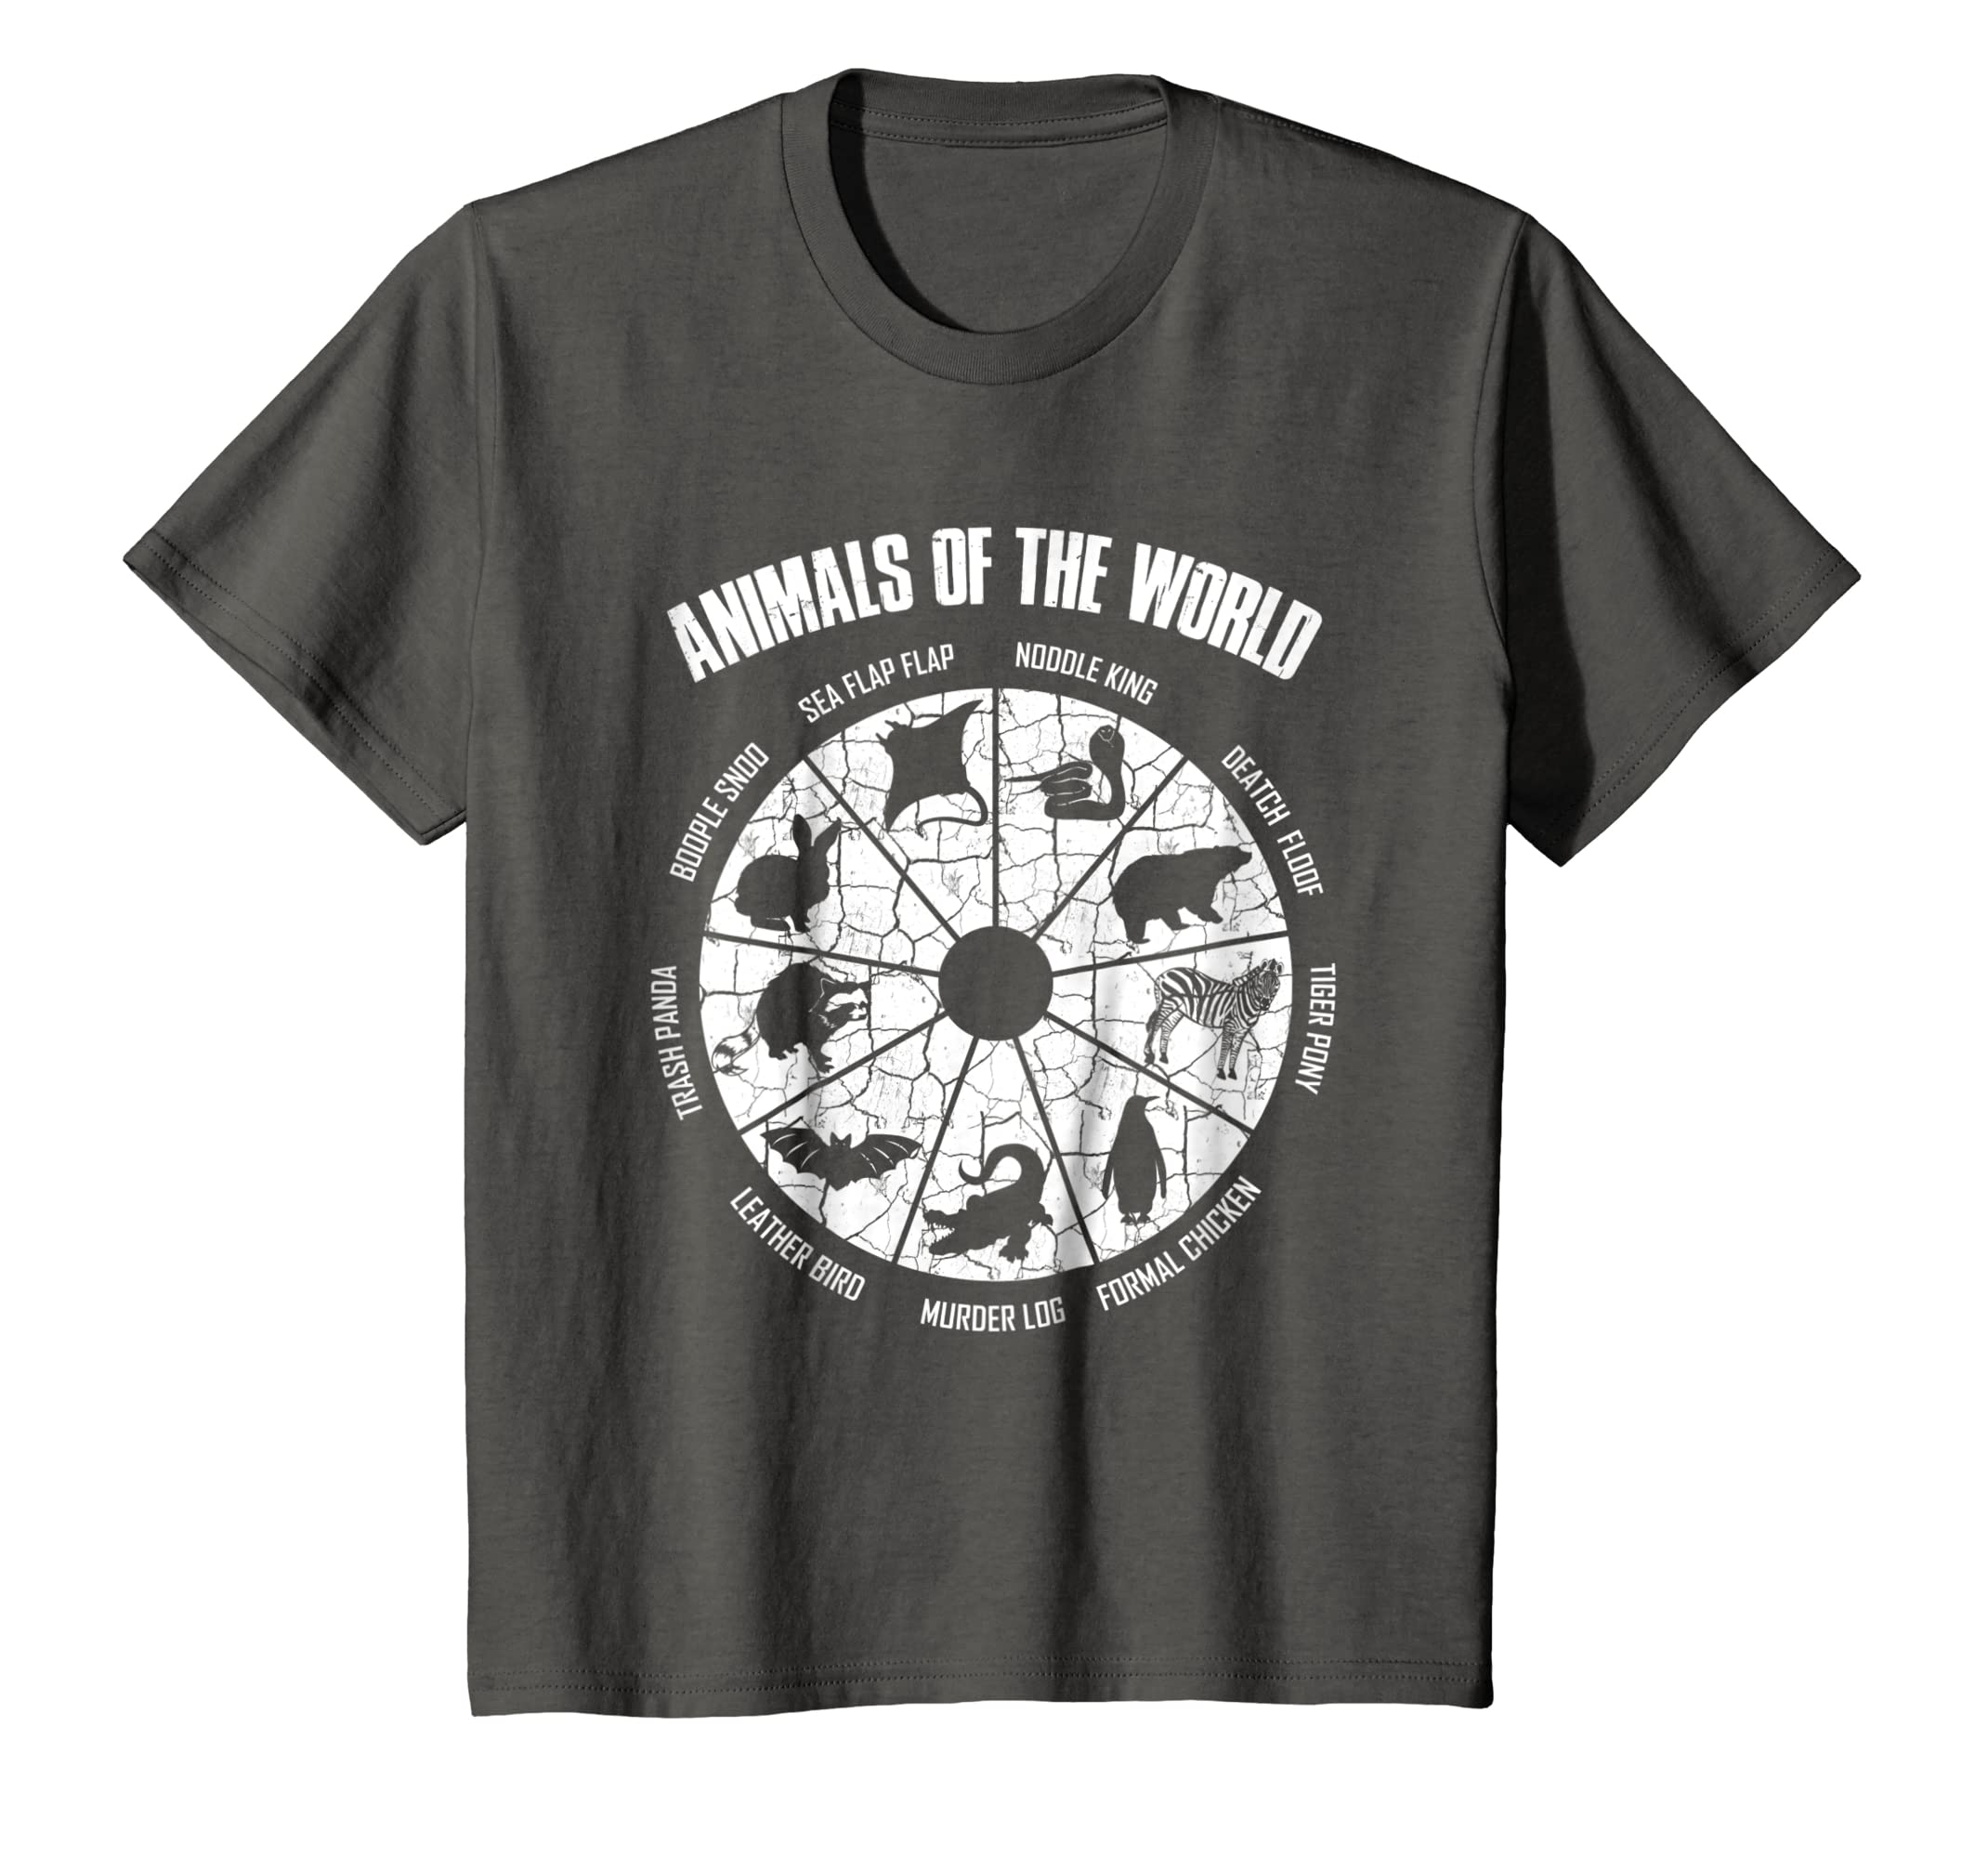 Amazon Simple Vintage Humor Funny Rare Animals of the World T shirt Clothing